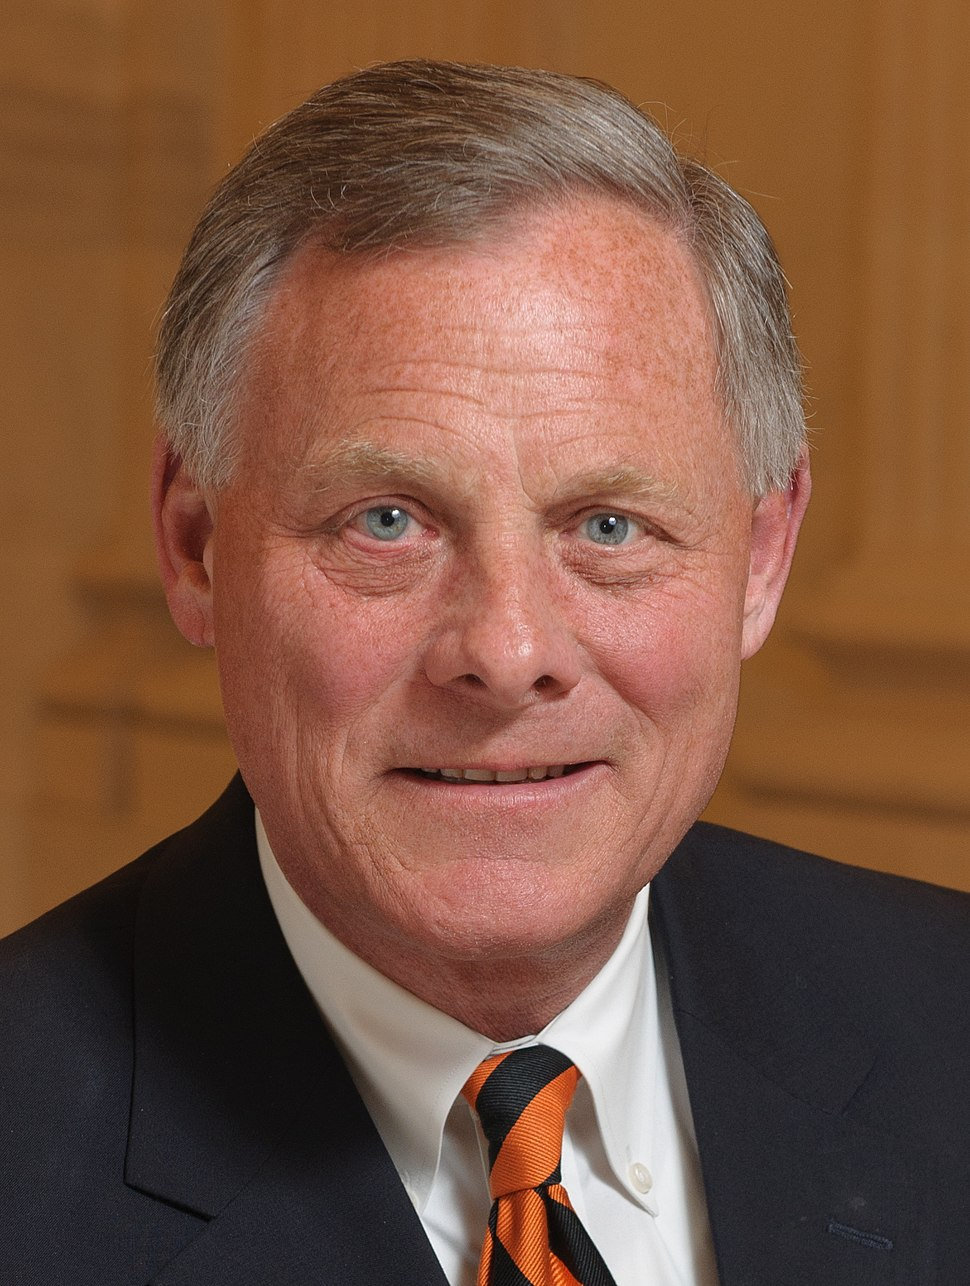 Richard Burr official portrait (cropped)